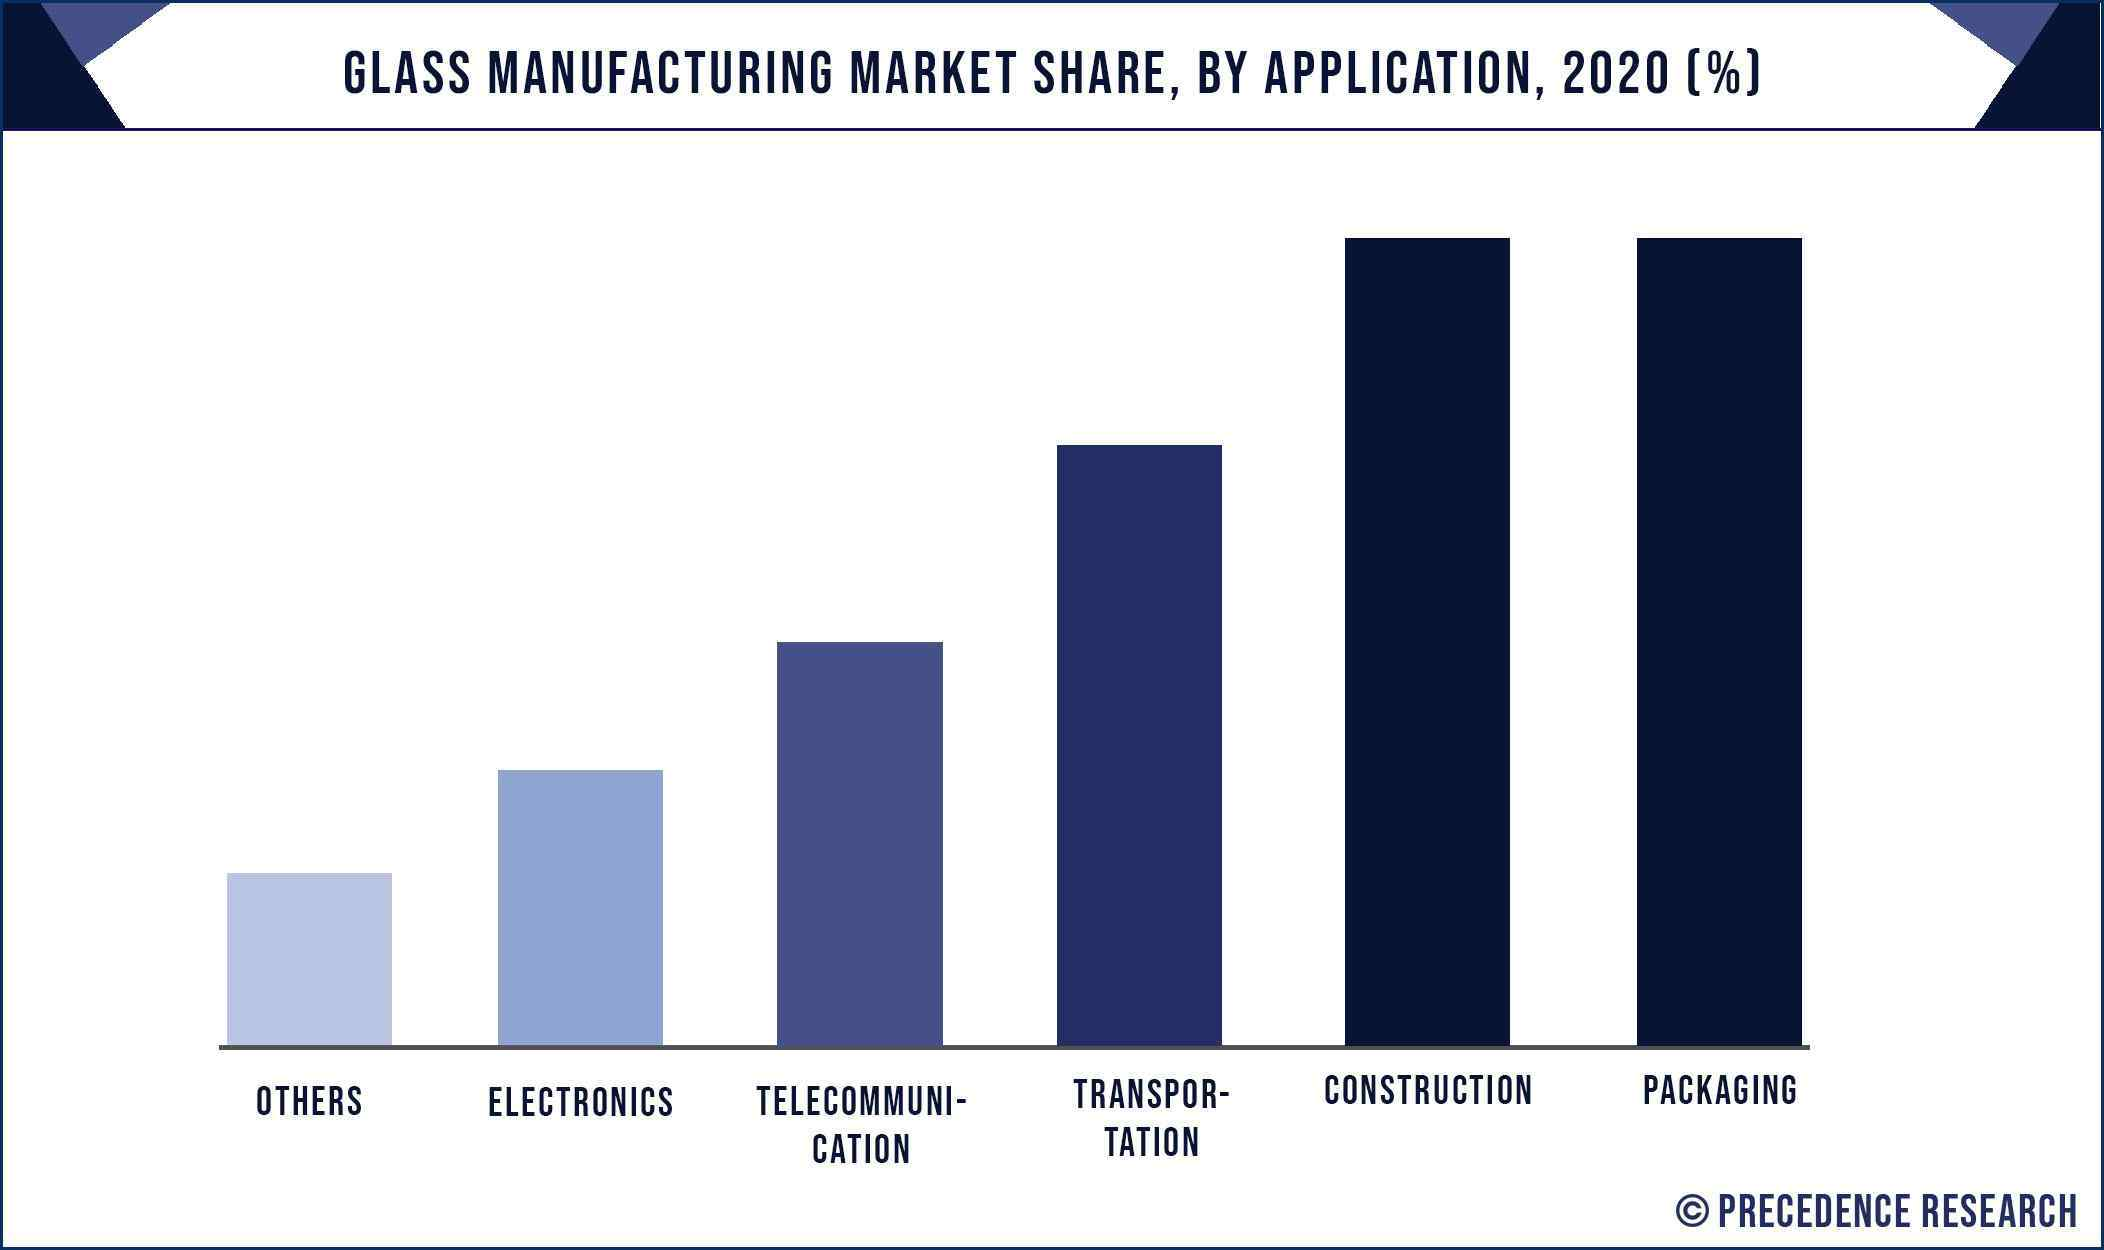 Glass Manufacturing Market Share, By Application, 2020 (%)